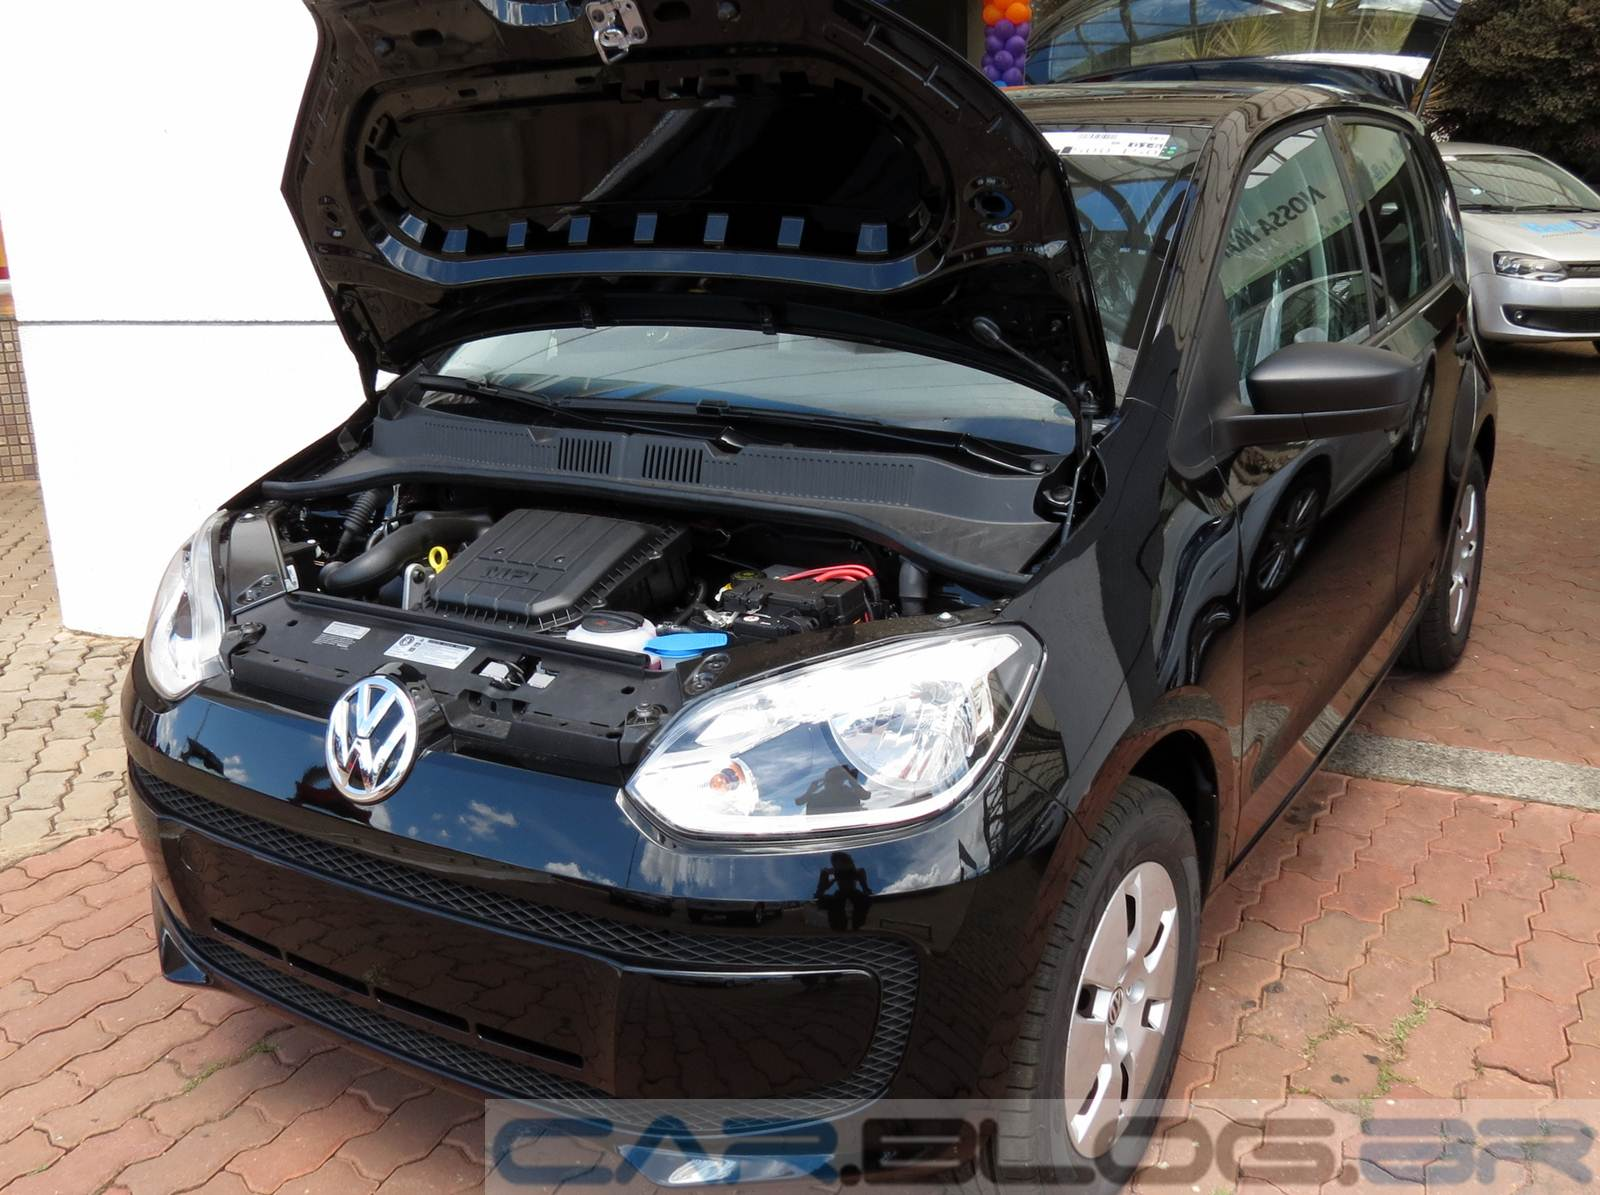 Volkswagen up! - Take up!